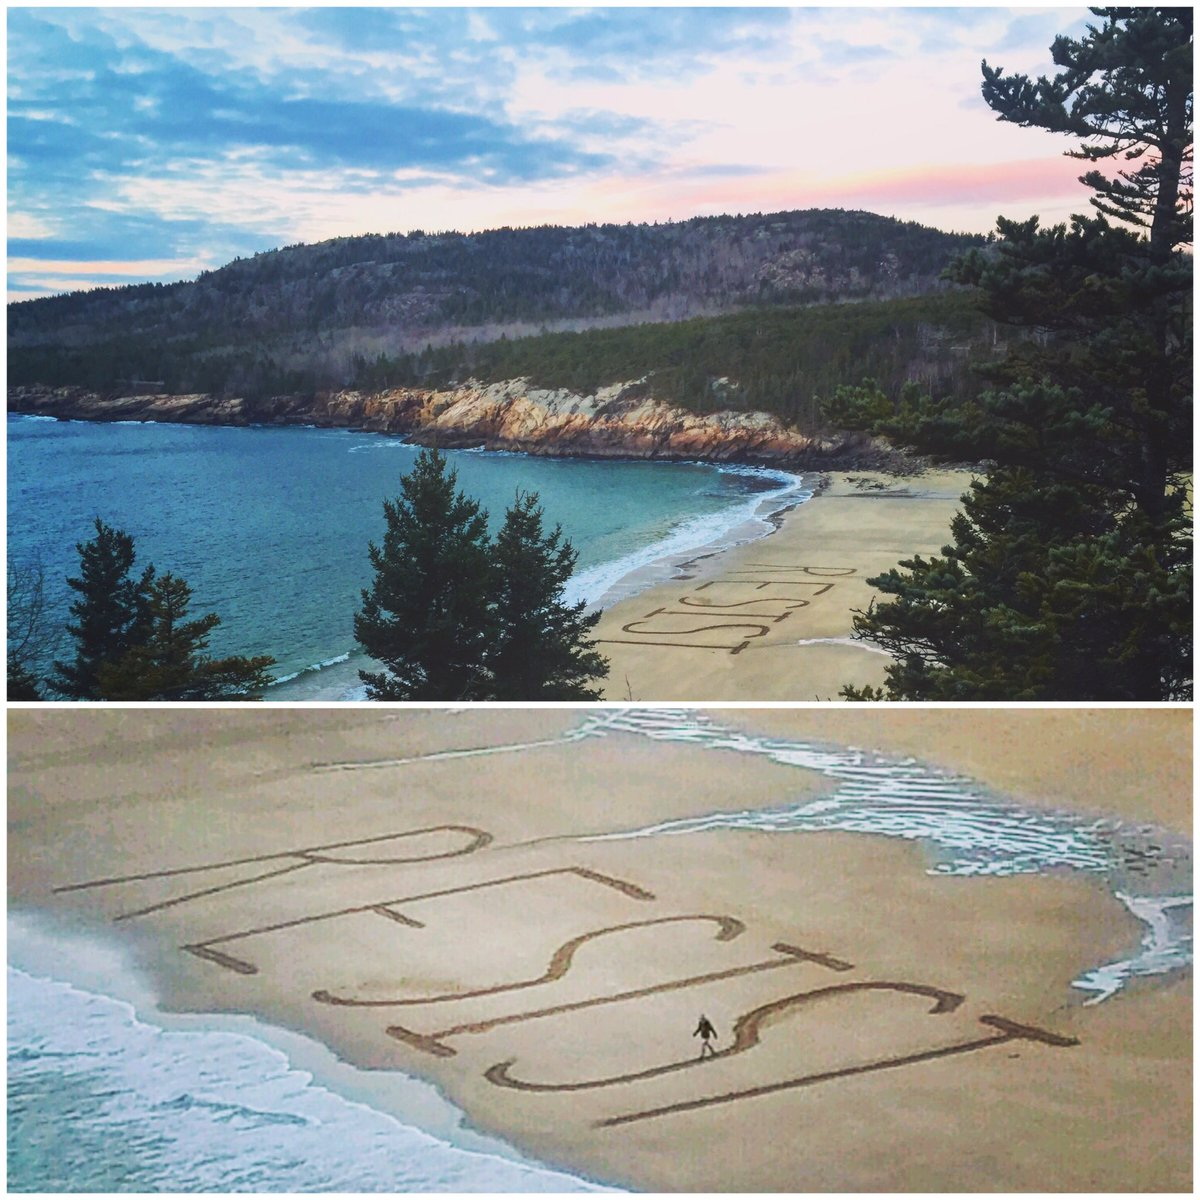 Yes, the word 'RESIST' really was written in letters over 25 feet tall on a beach in Acadia National Park yesterday  https://t.co/yDFrmENG8A